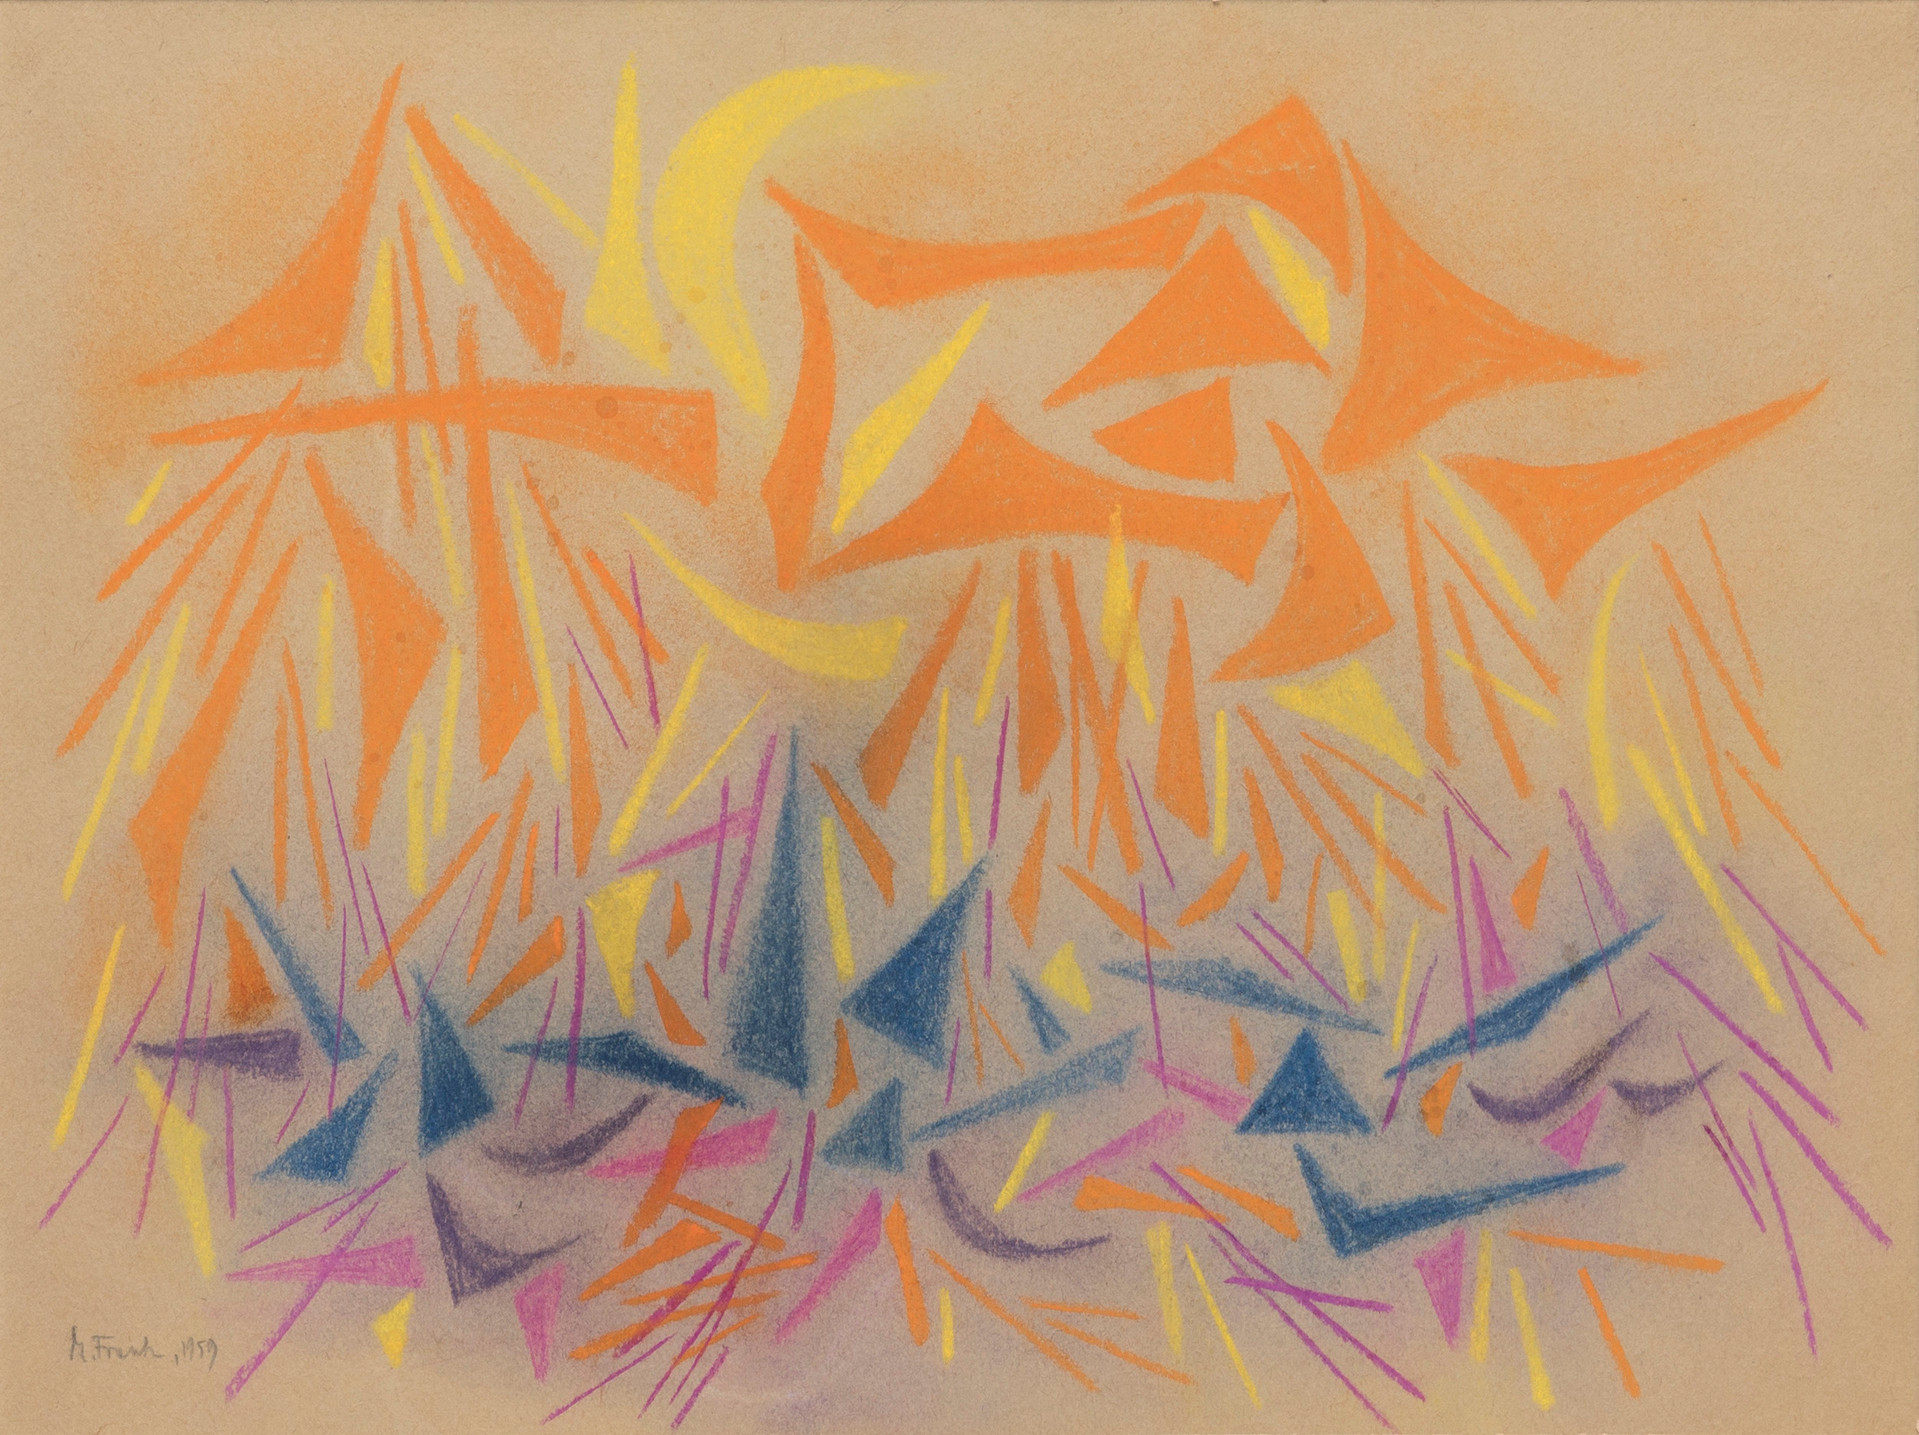 Untitled - orange, yellow and blue shapes, pink lines